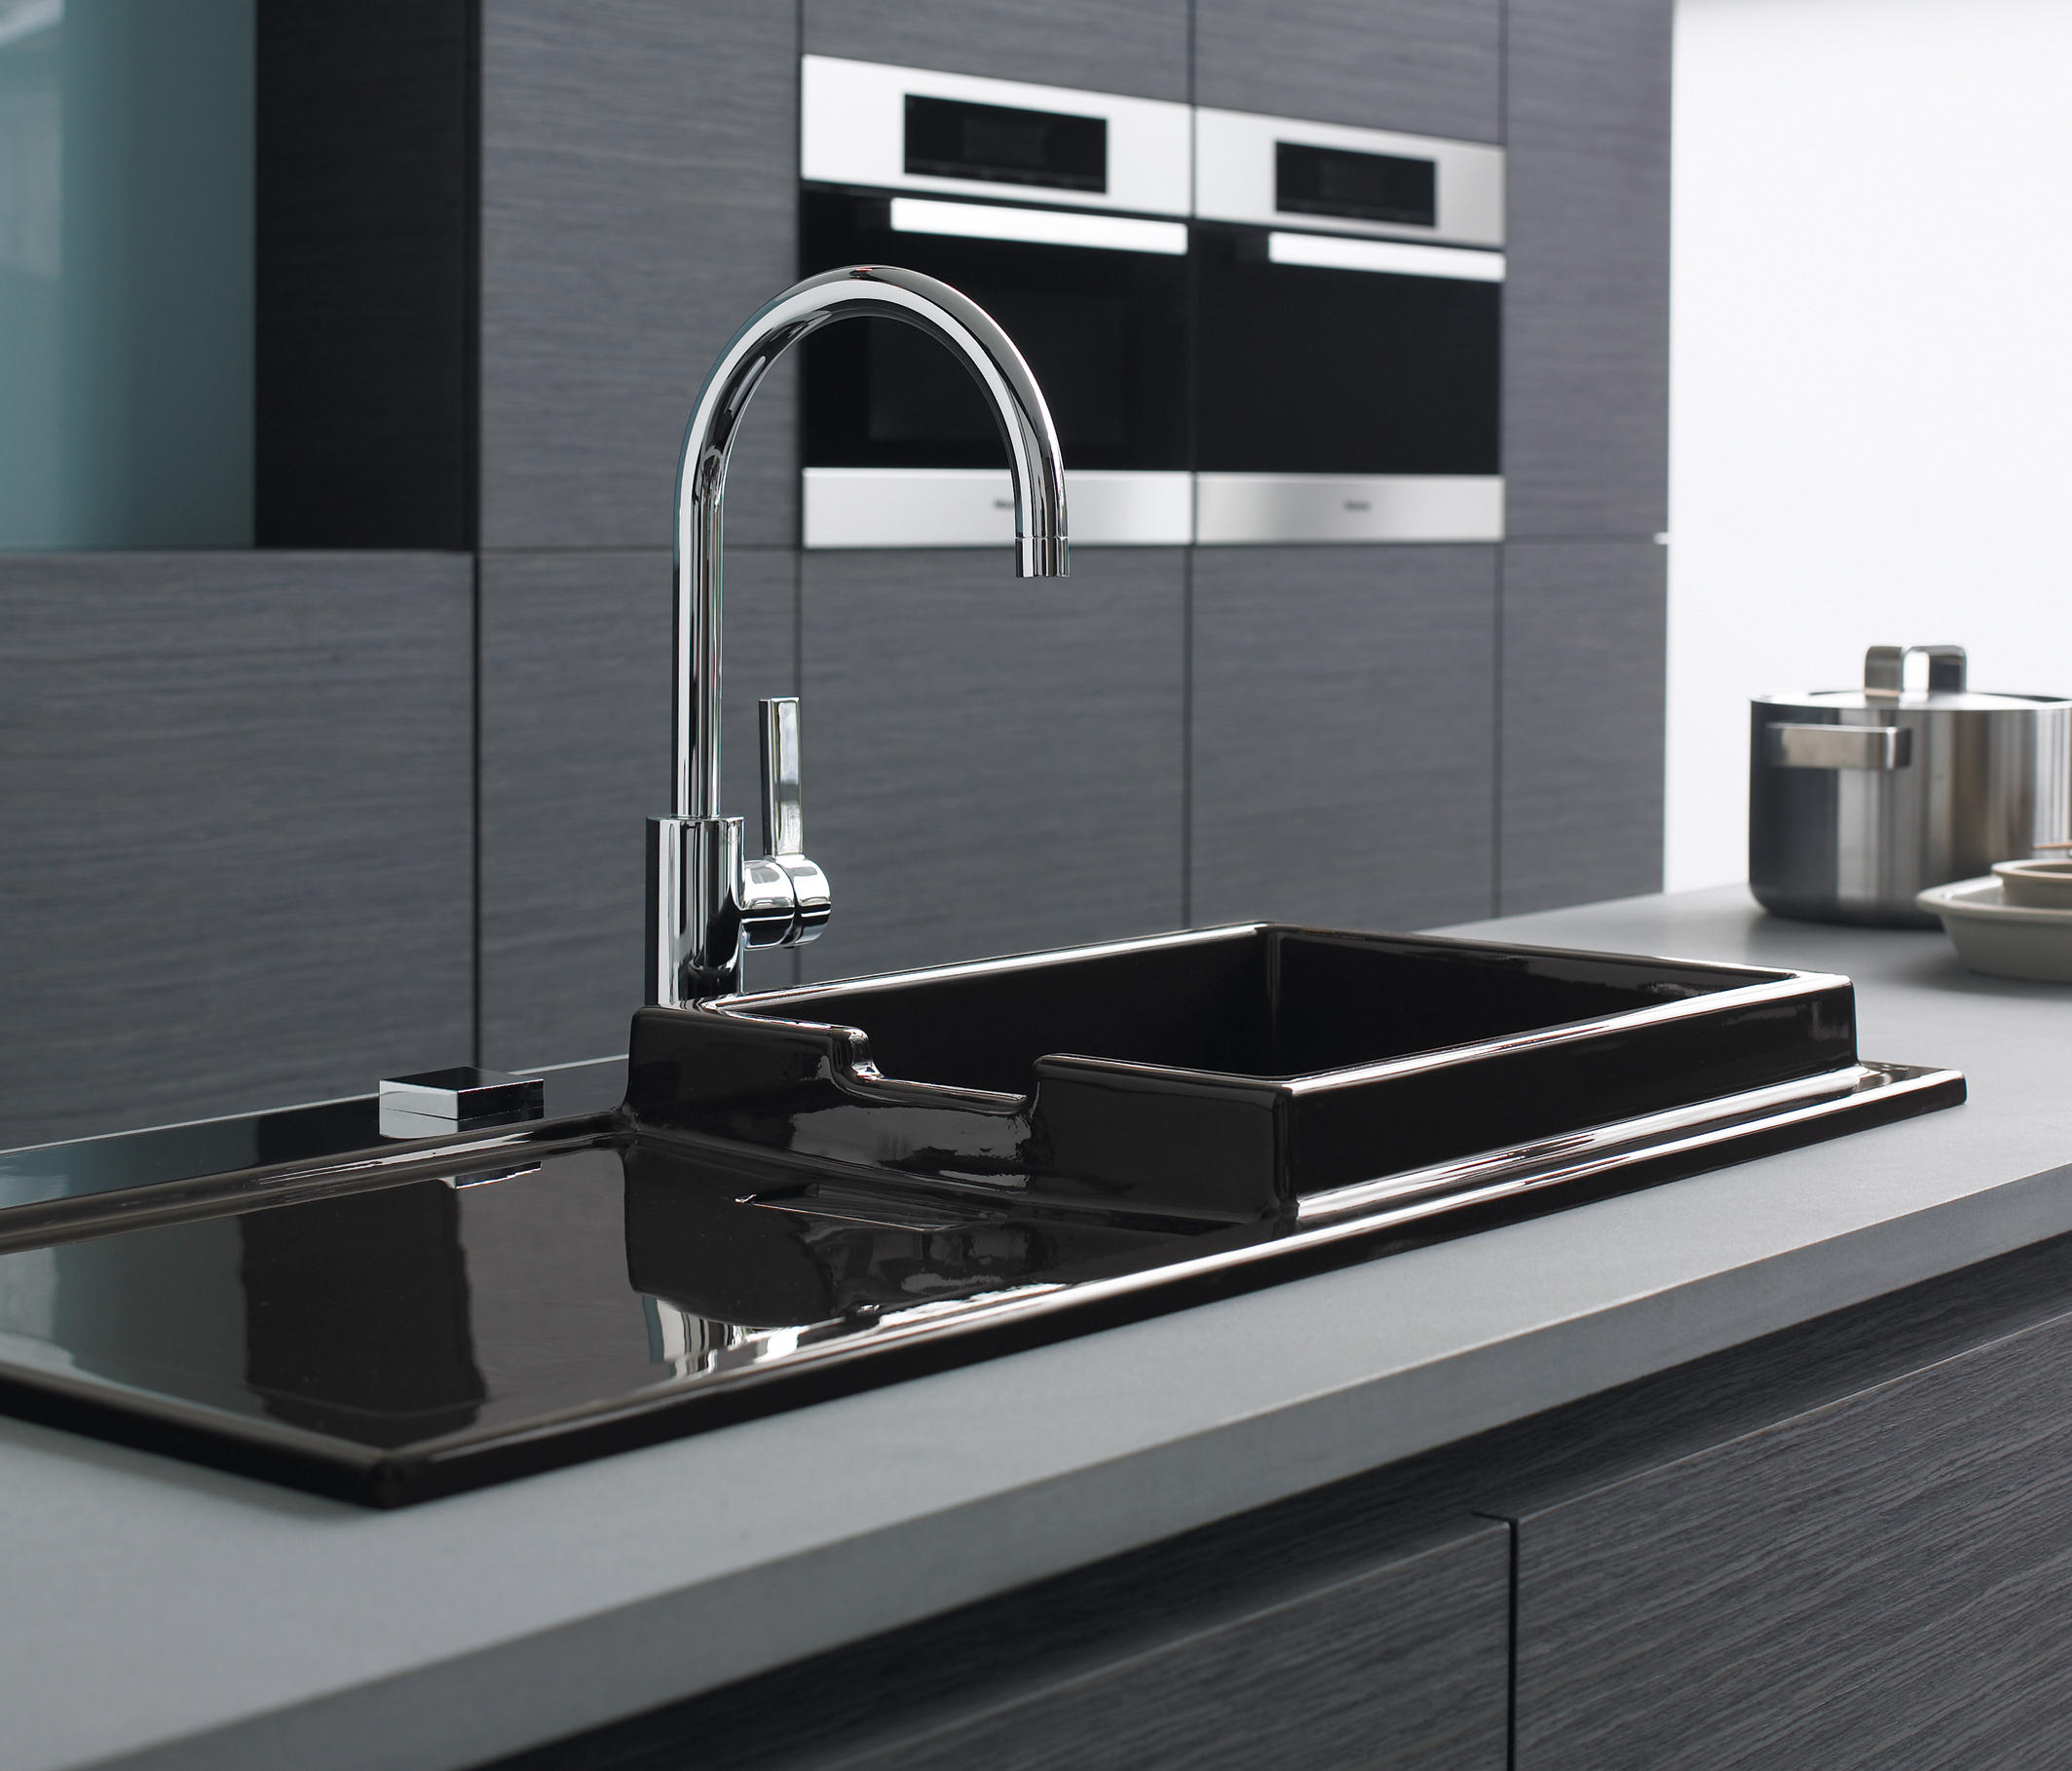 starck k kitchen sinks kitchen sinks from duravit architonic